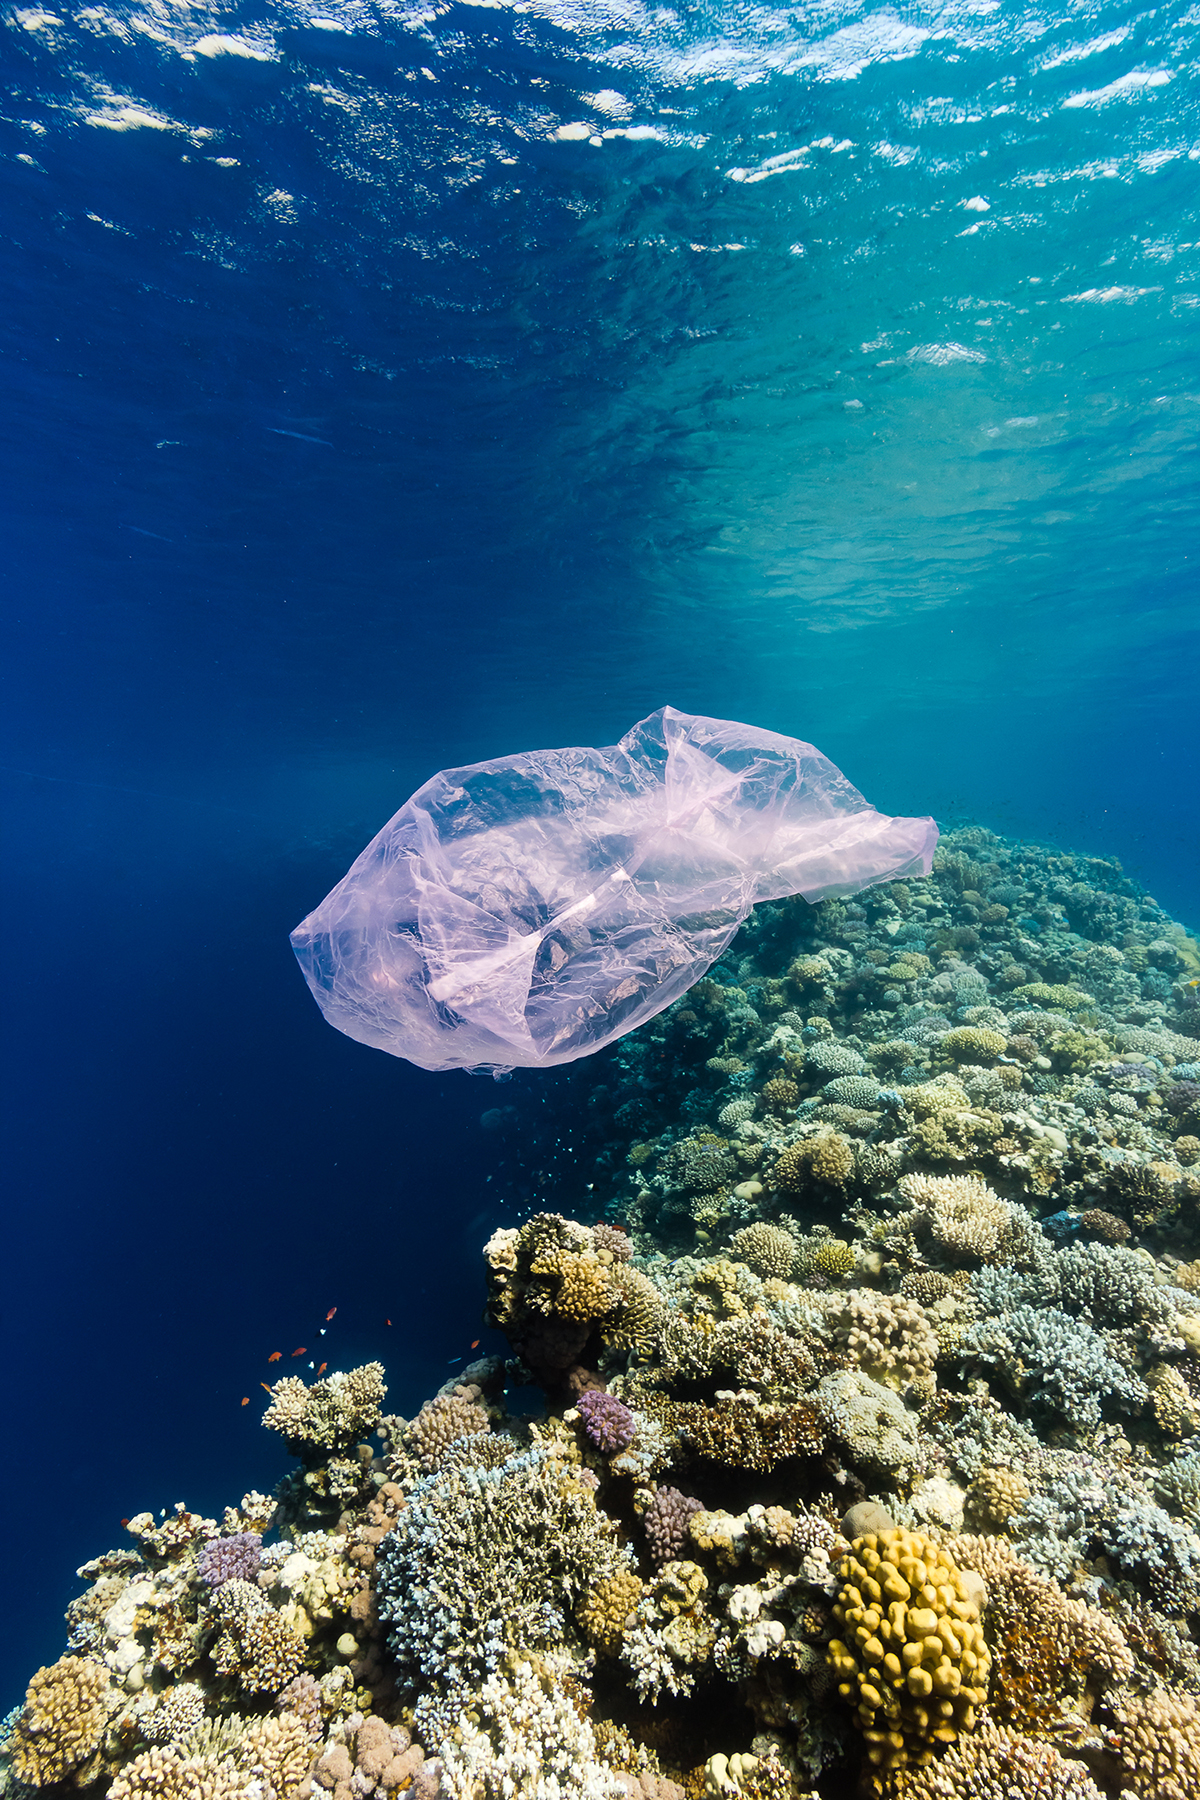 """Bring the Bag"" PSA Launched in Galveston, Texas, to Reduce Single-Use Plastic Bag Pollution"